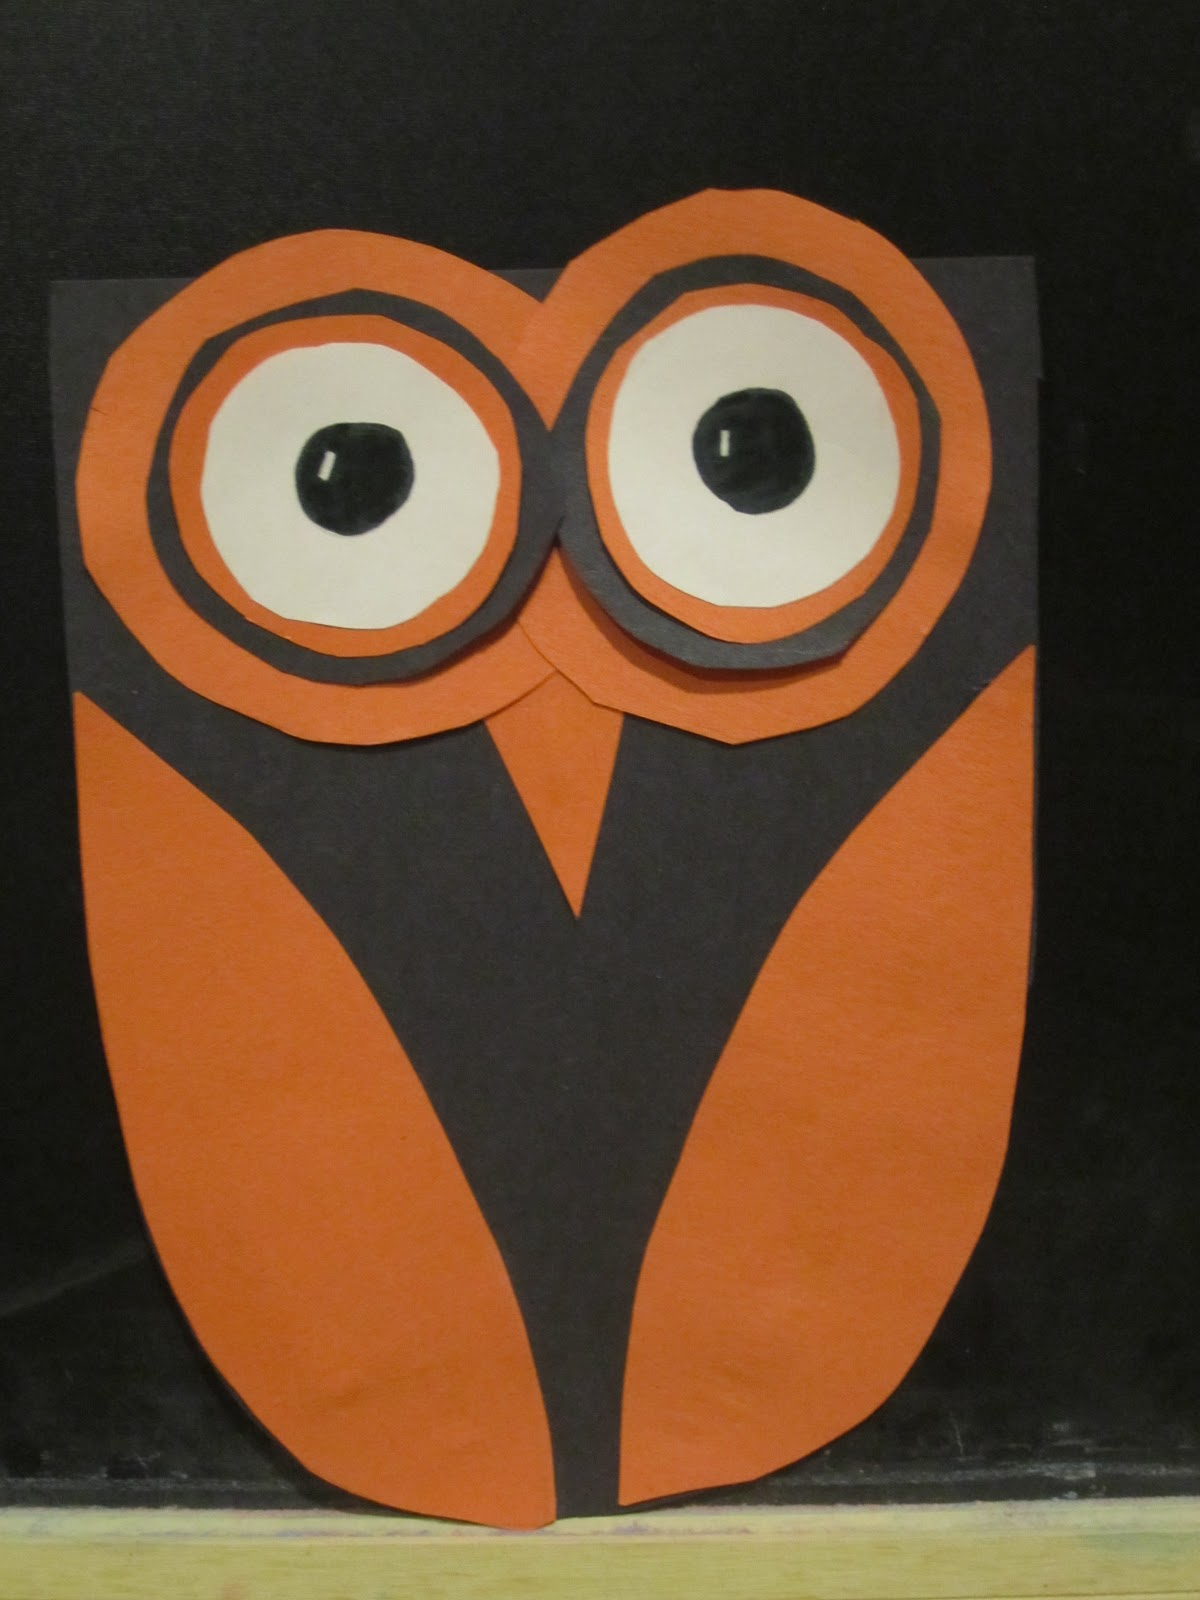 Construction Paper Crafts For Halloween Choice Image